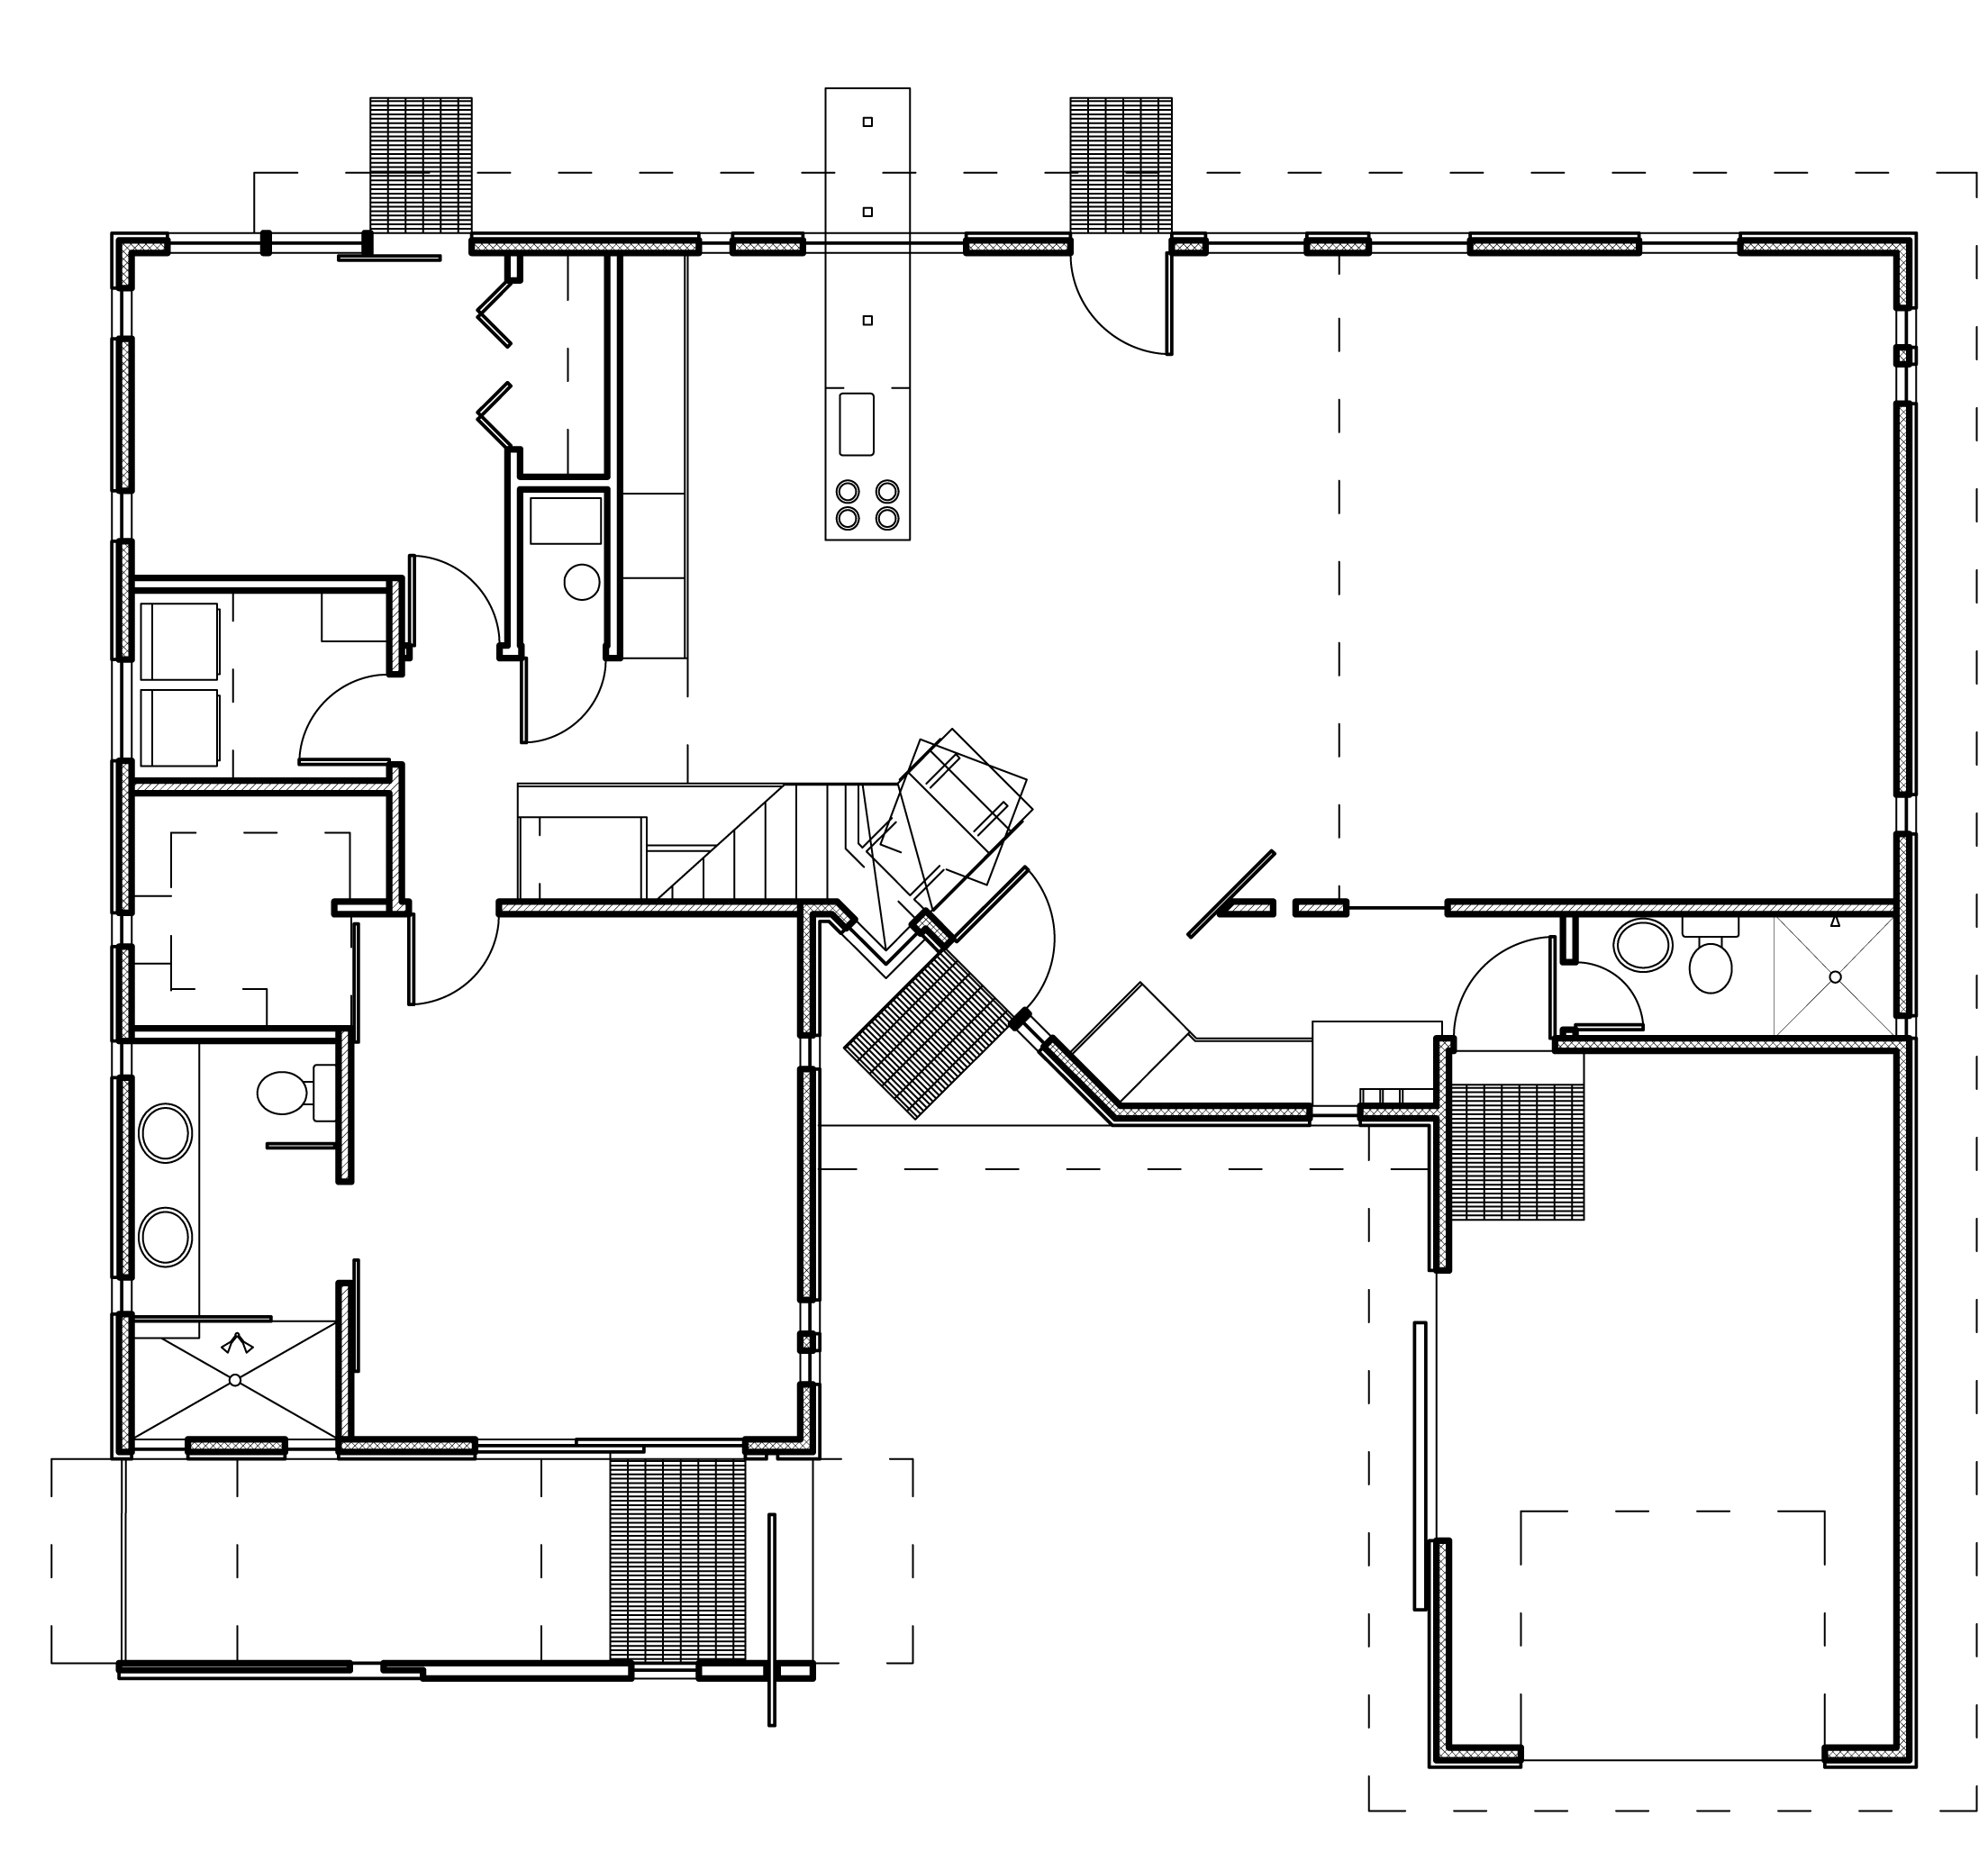 Modern house plans contemporary home designs floor plan 03 for Contemporary open floor plans